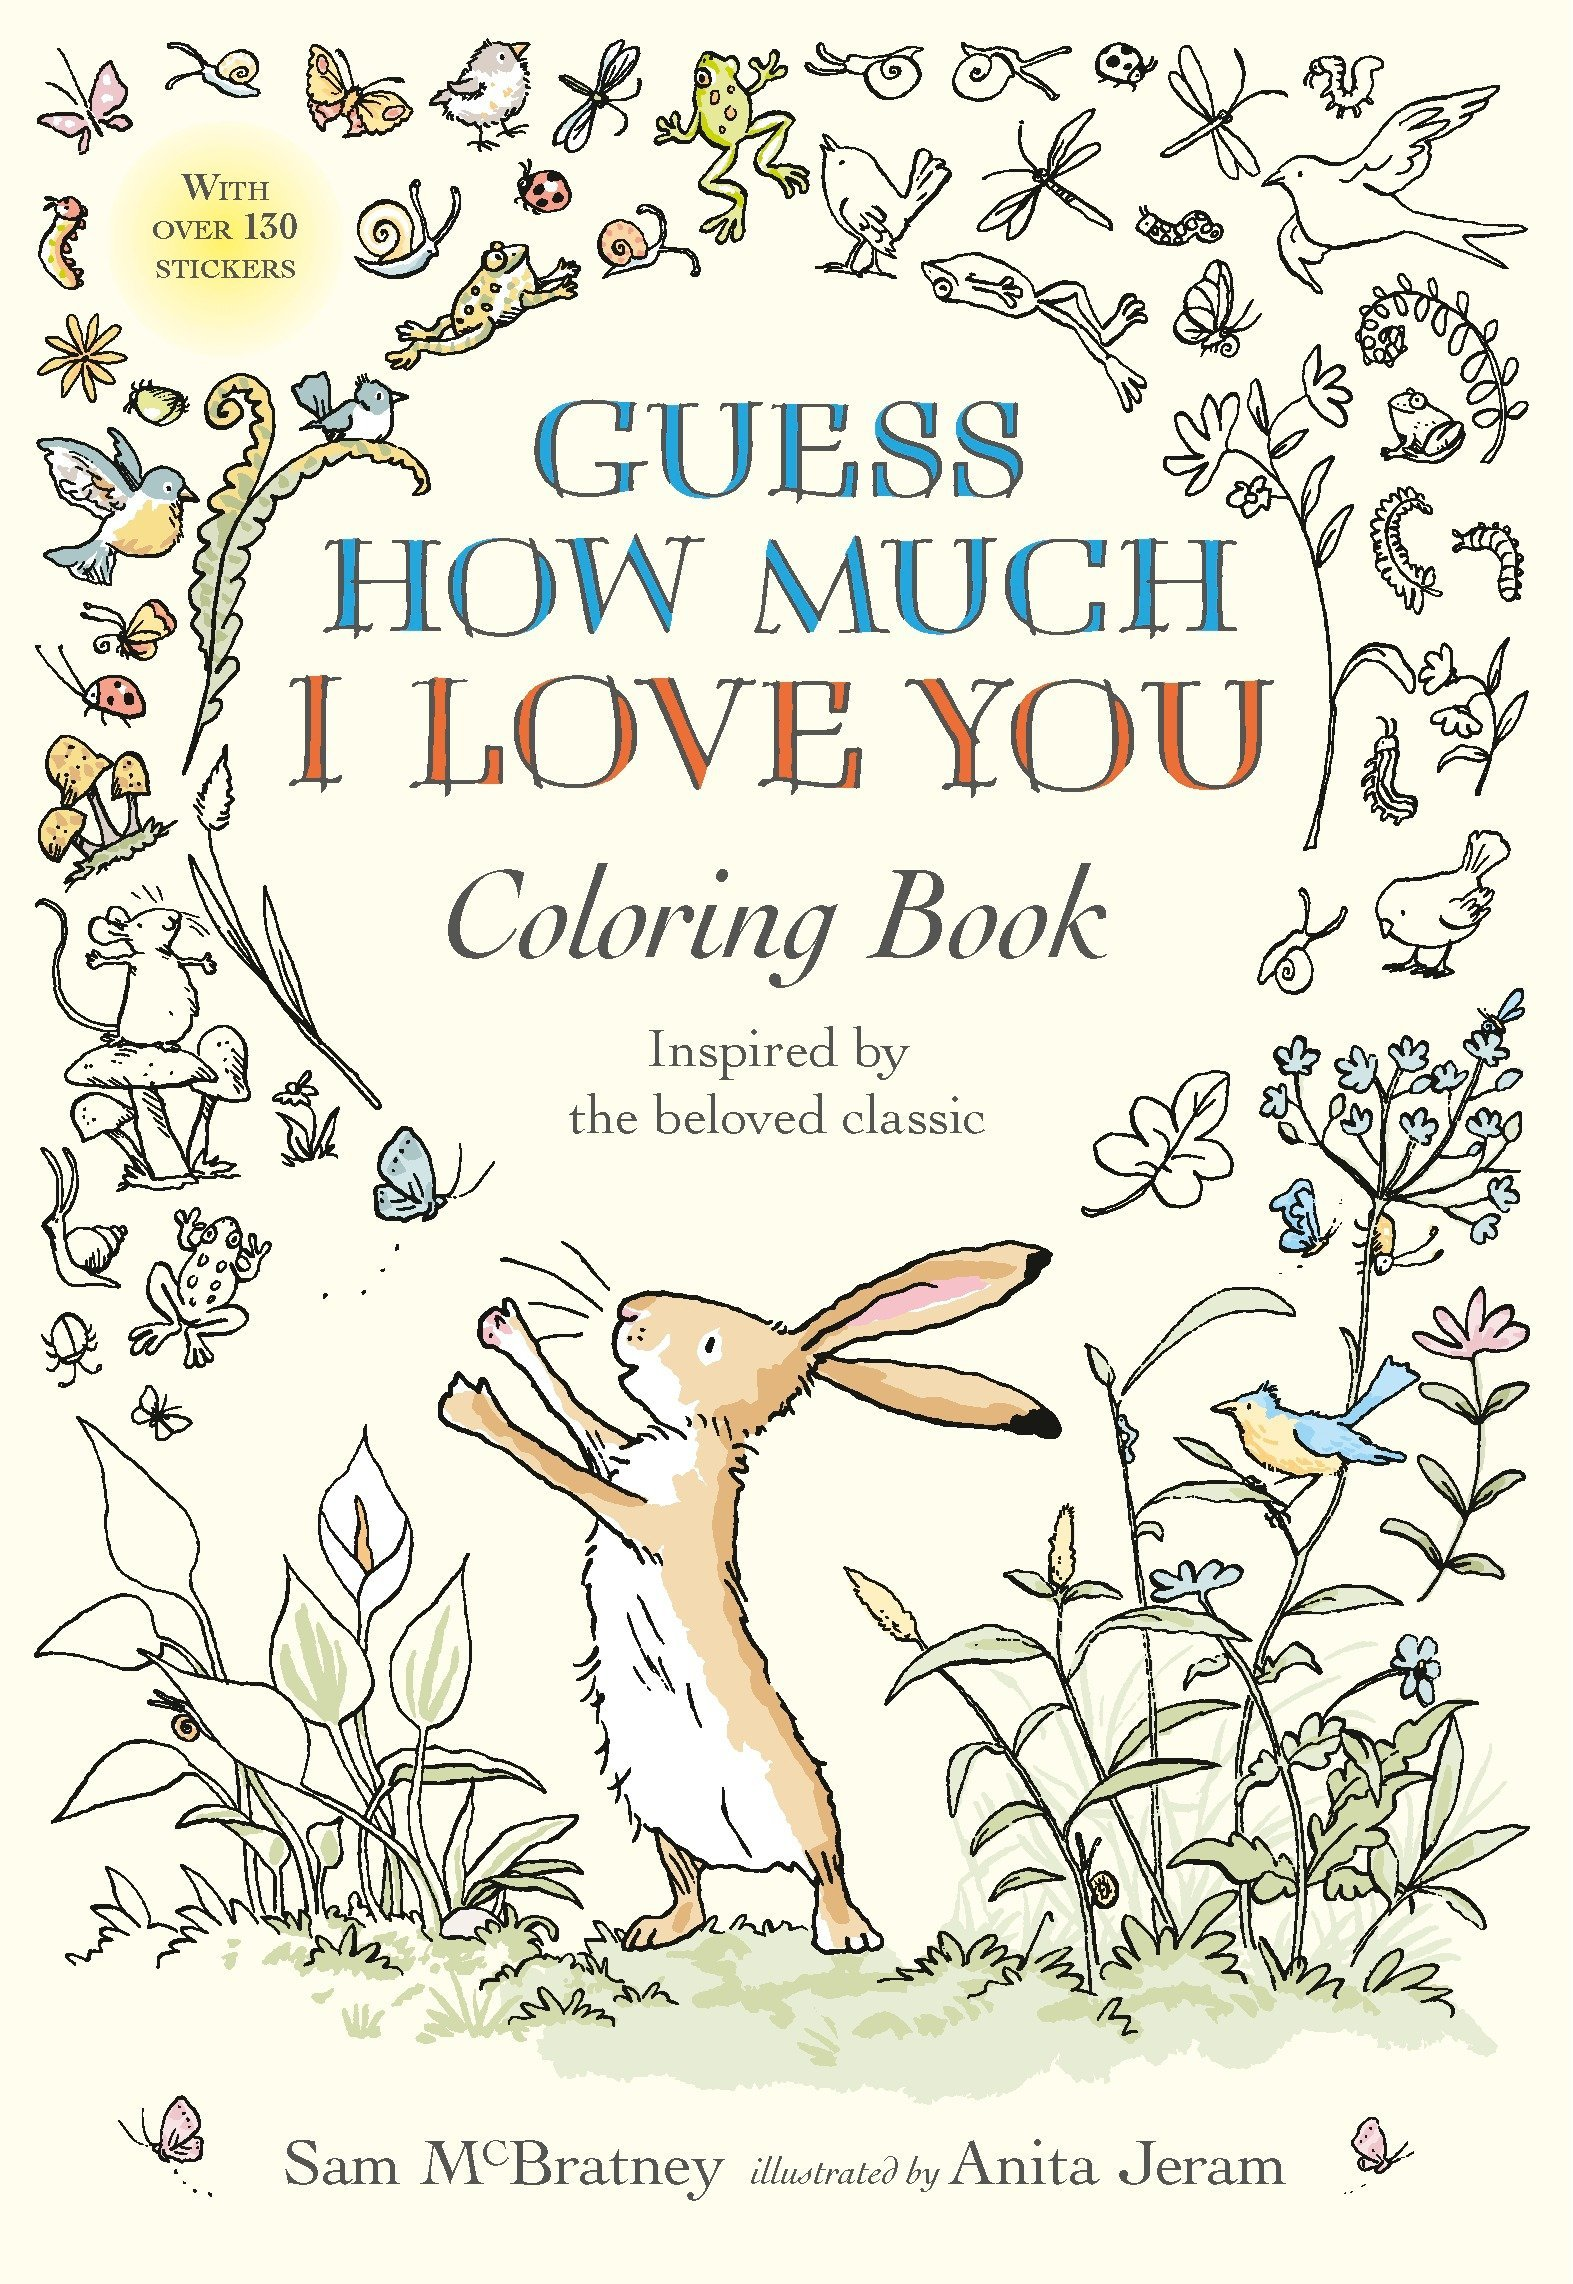 Amazon Guess How Much I Love You Coloring Book 9780763694678 Sam McBratney Anita Jeram Books